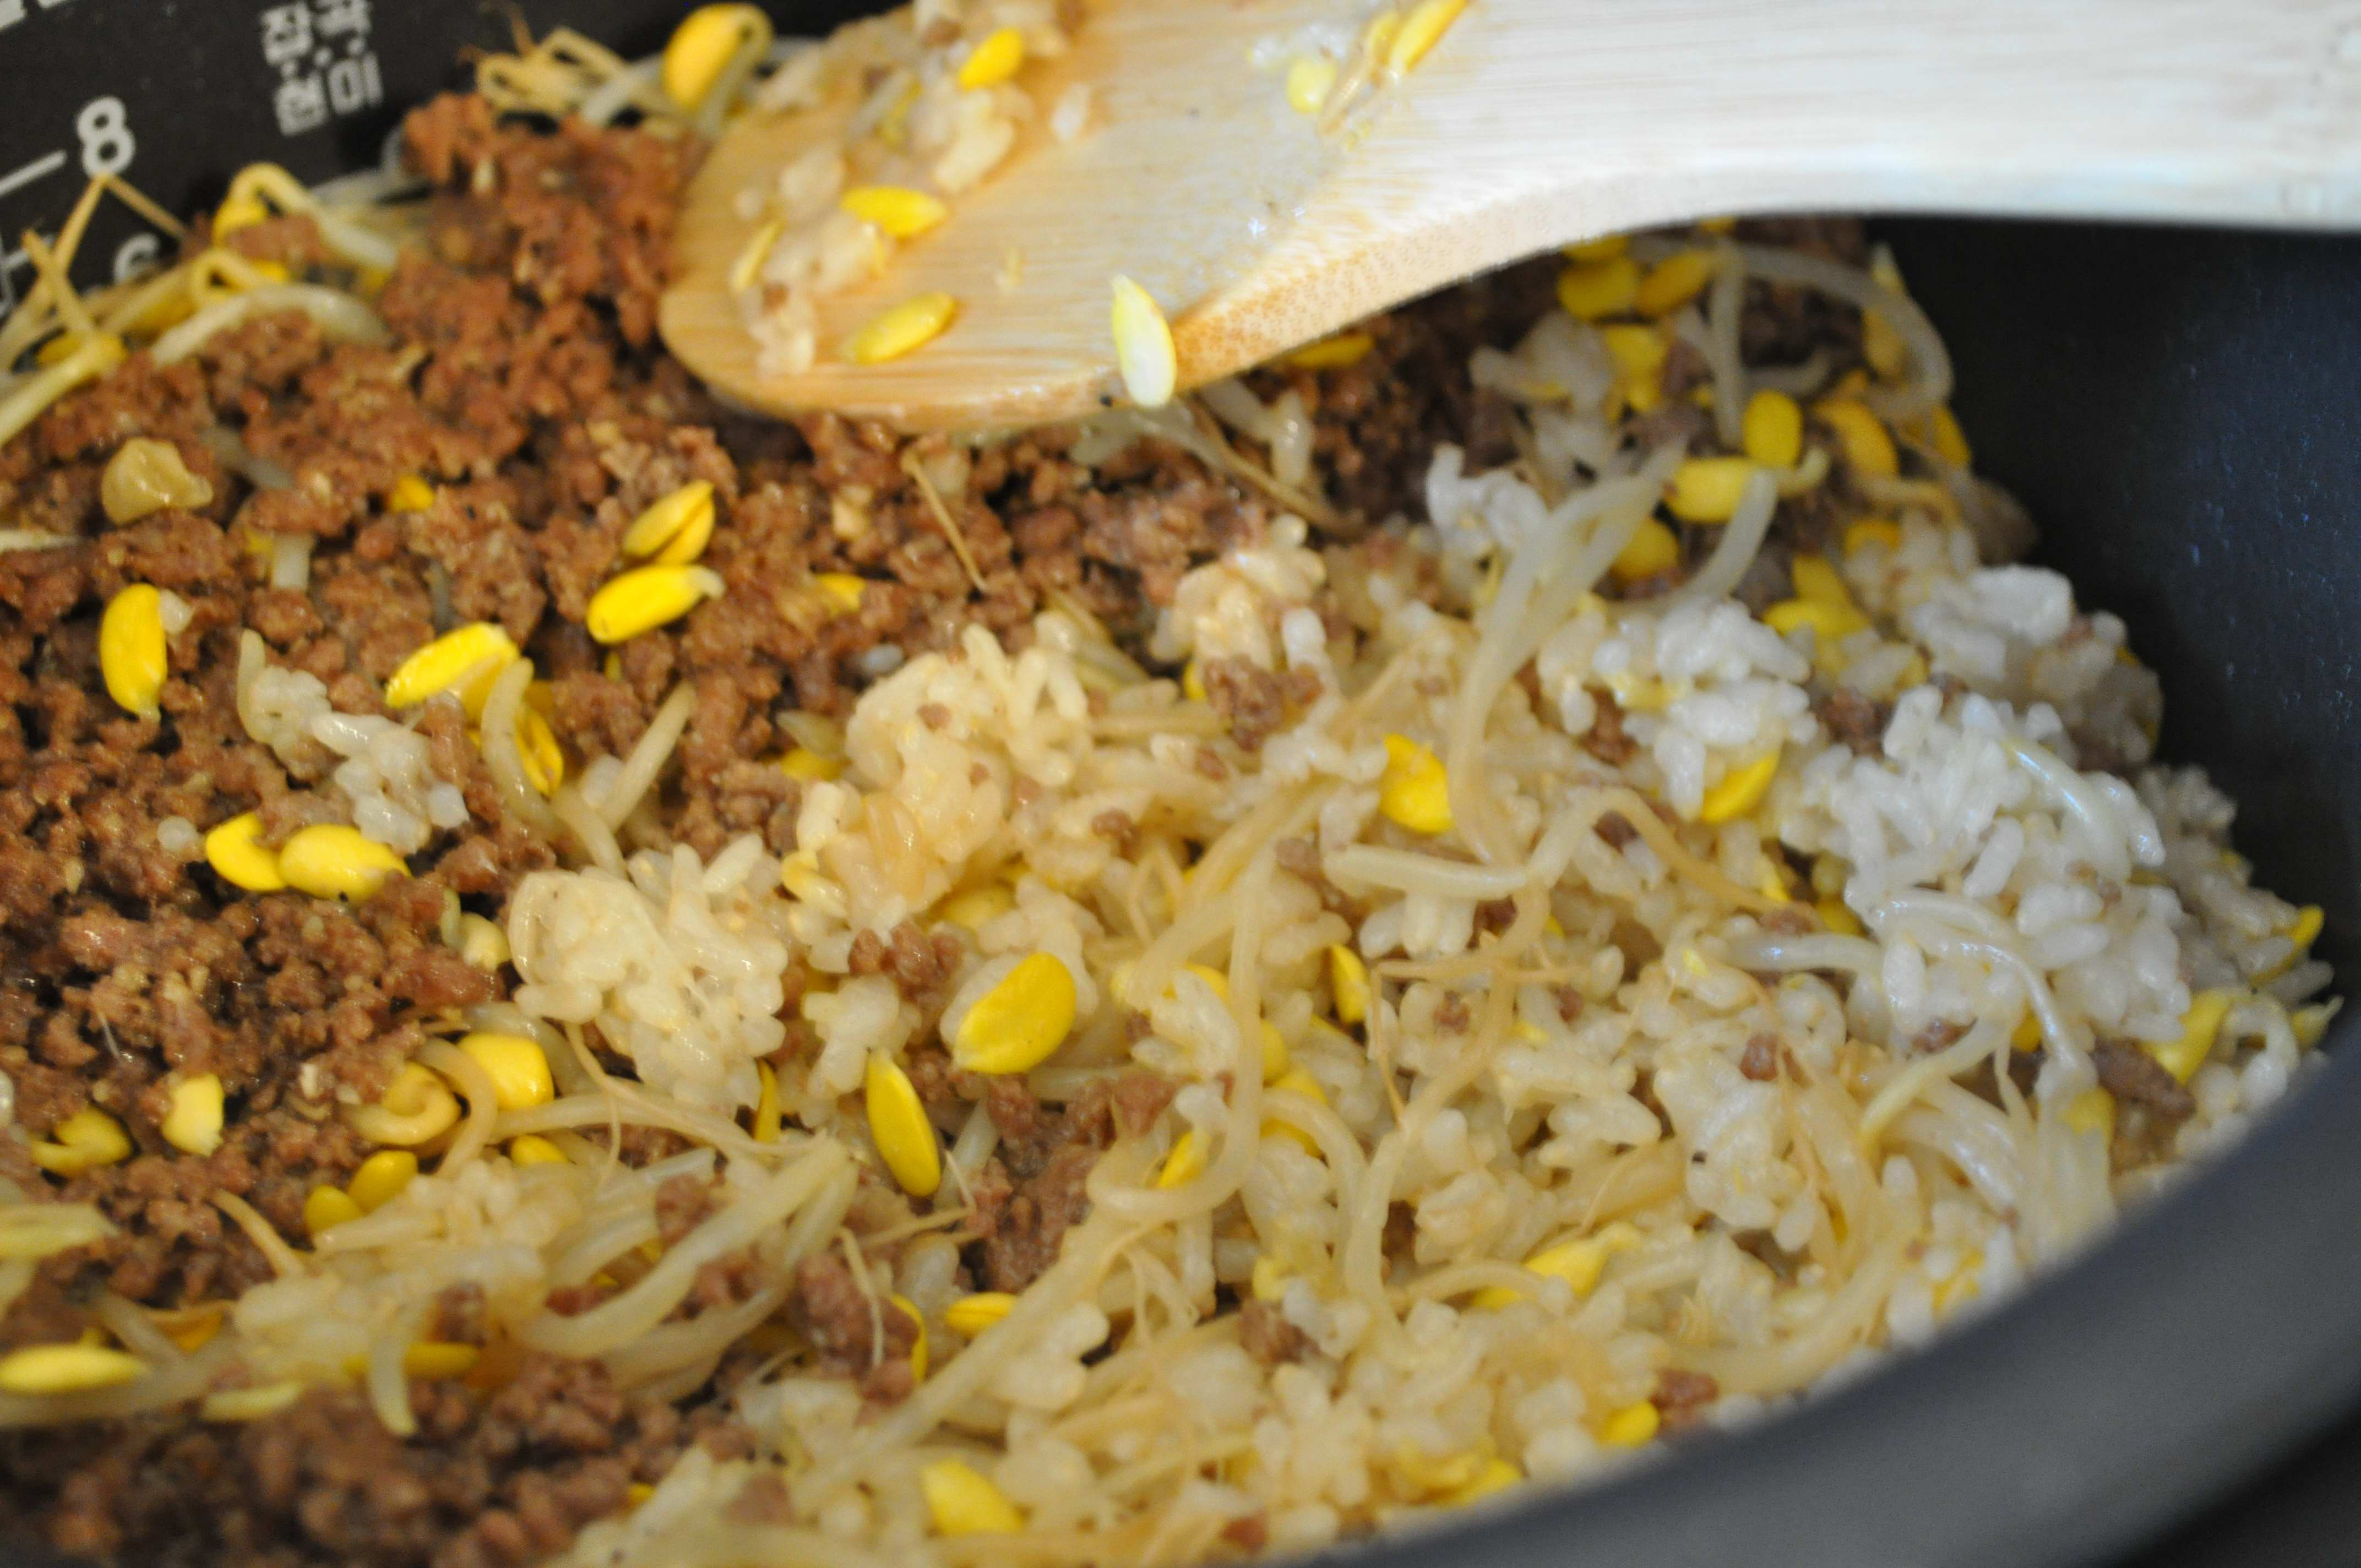 mixing the cooked rice